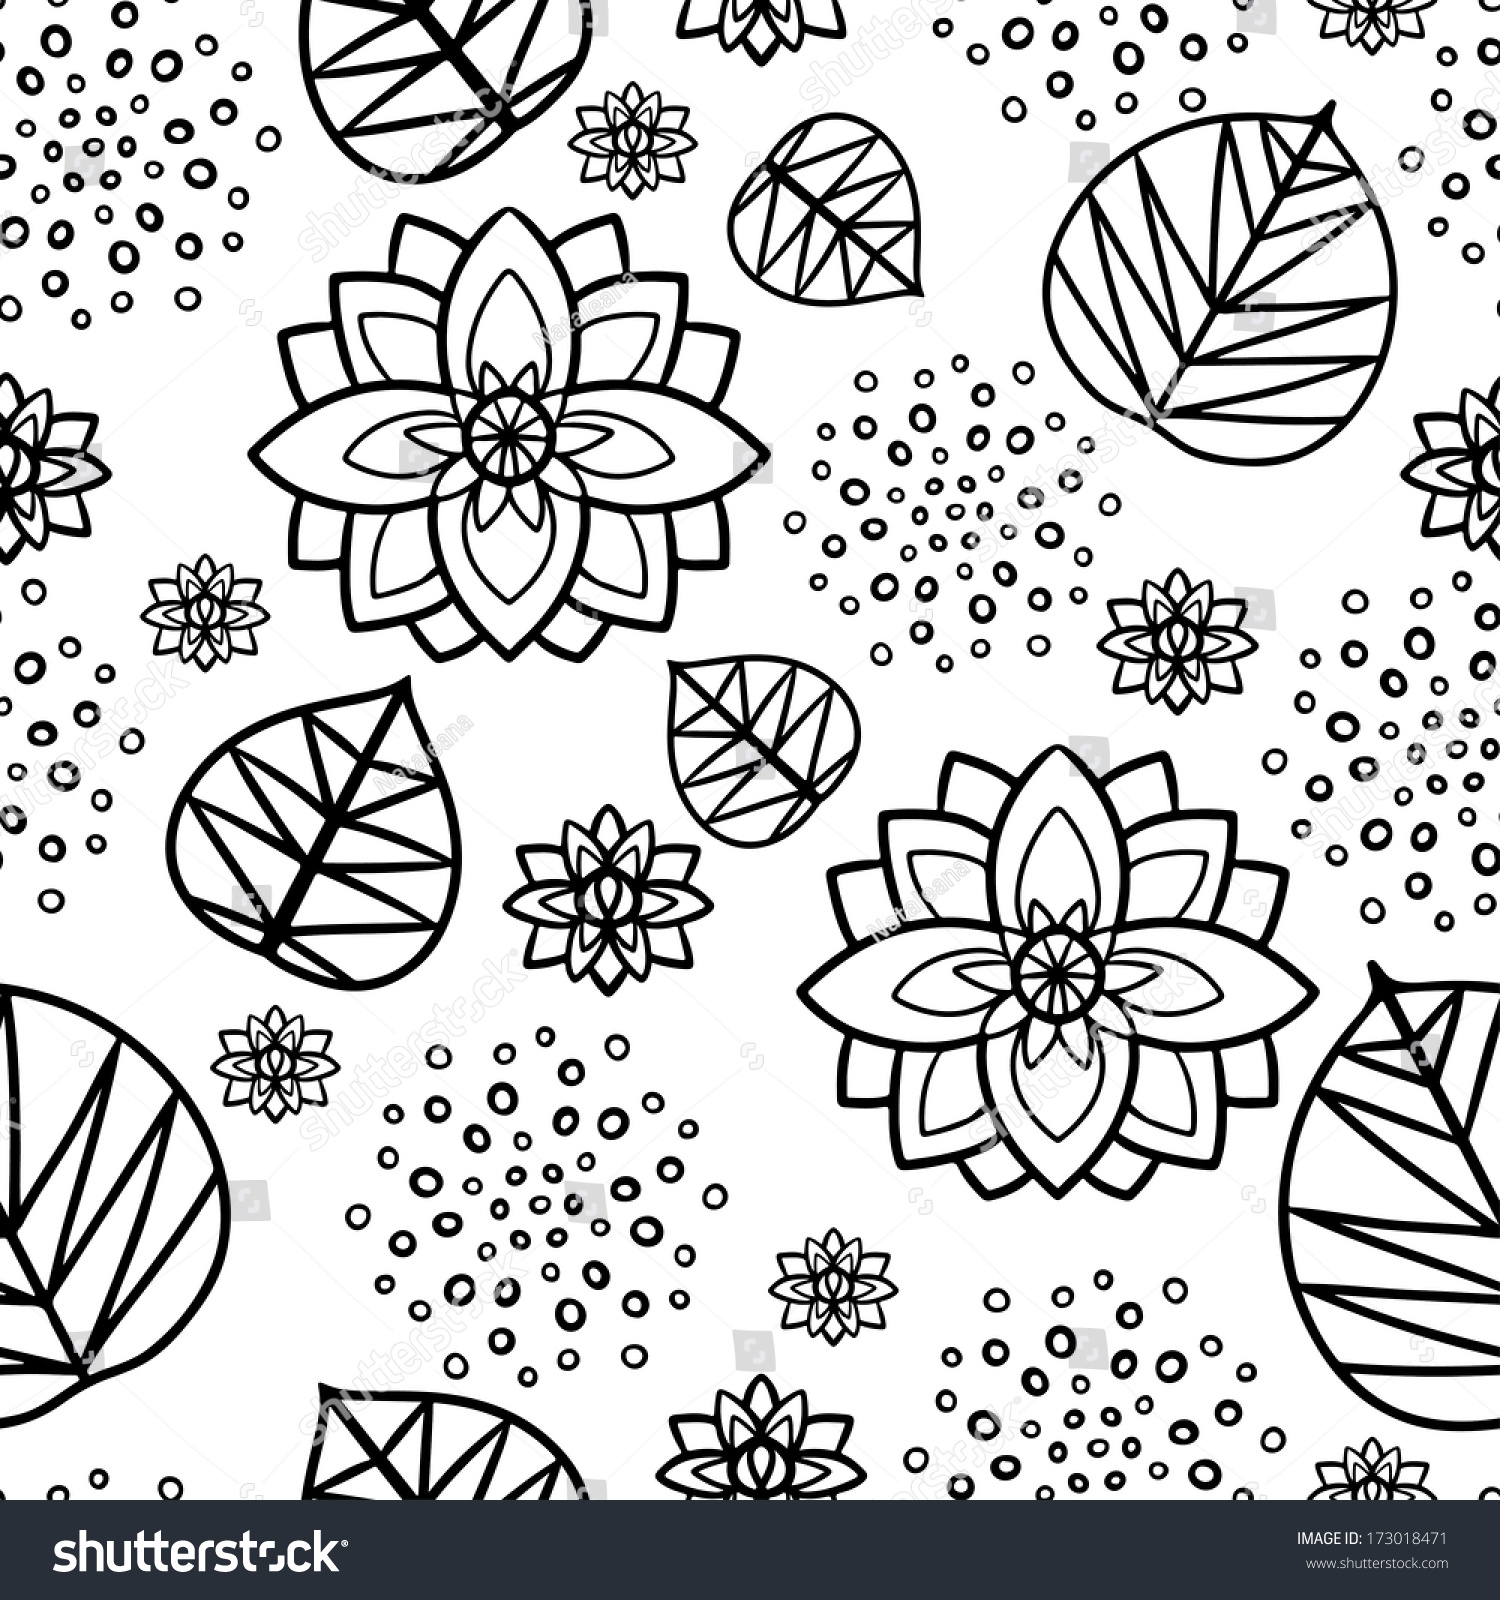 Water Lily Stencil Black And White: Seamless Pattern Water Lily Flowers Leaves Stock Vector